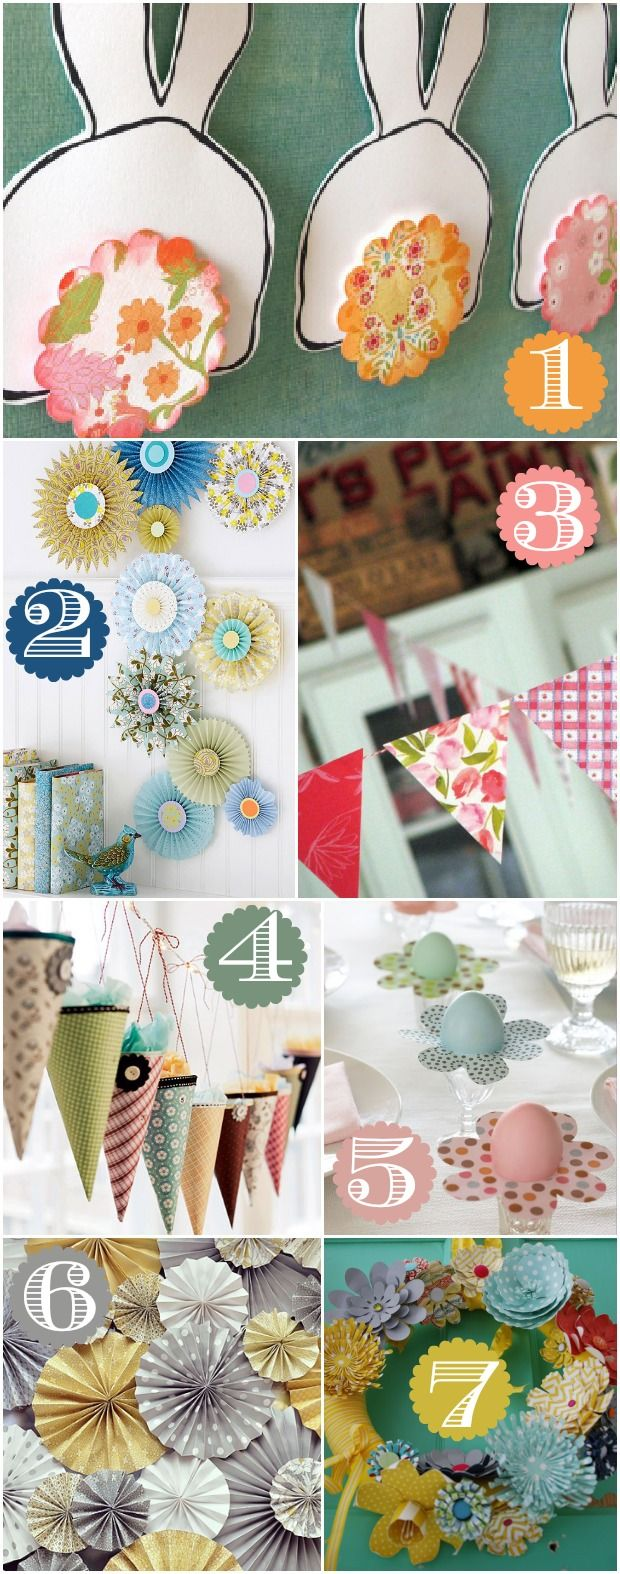 How to make scrapbook decorations - 42 Ways To Decorate With Scrapbook Paper